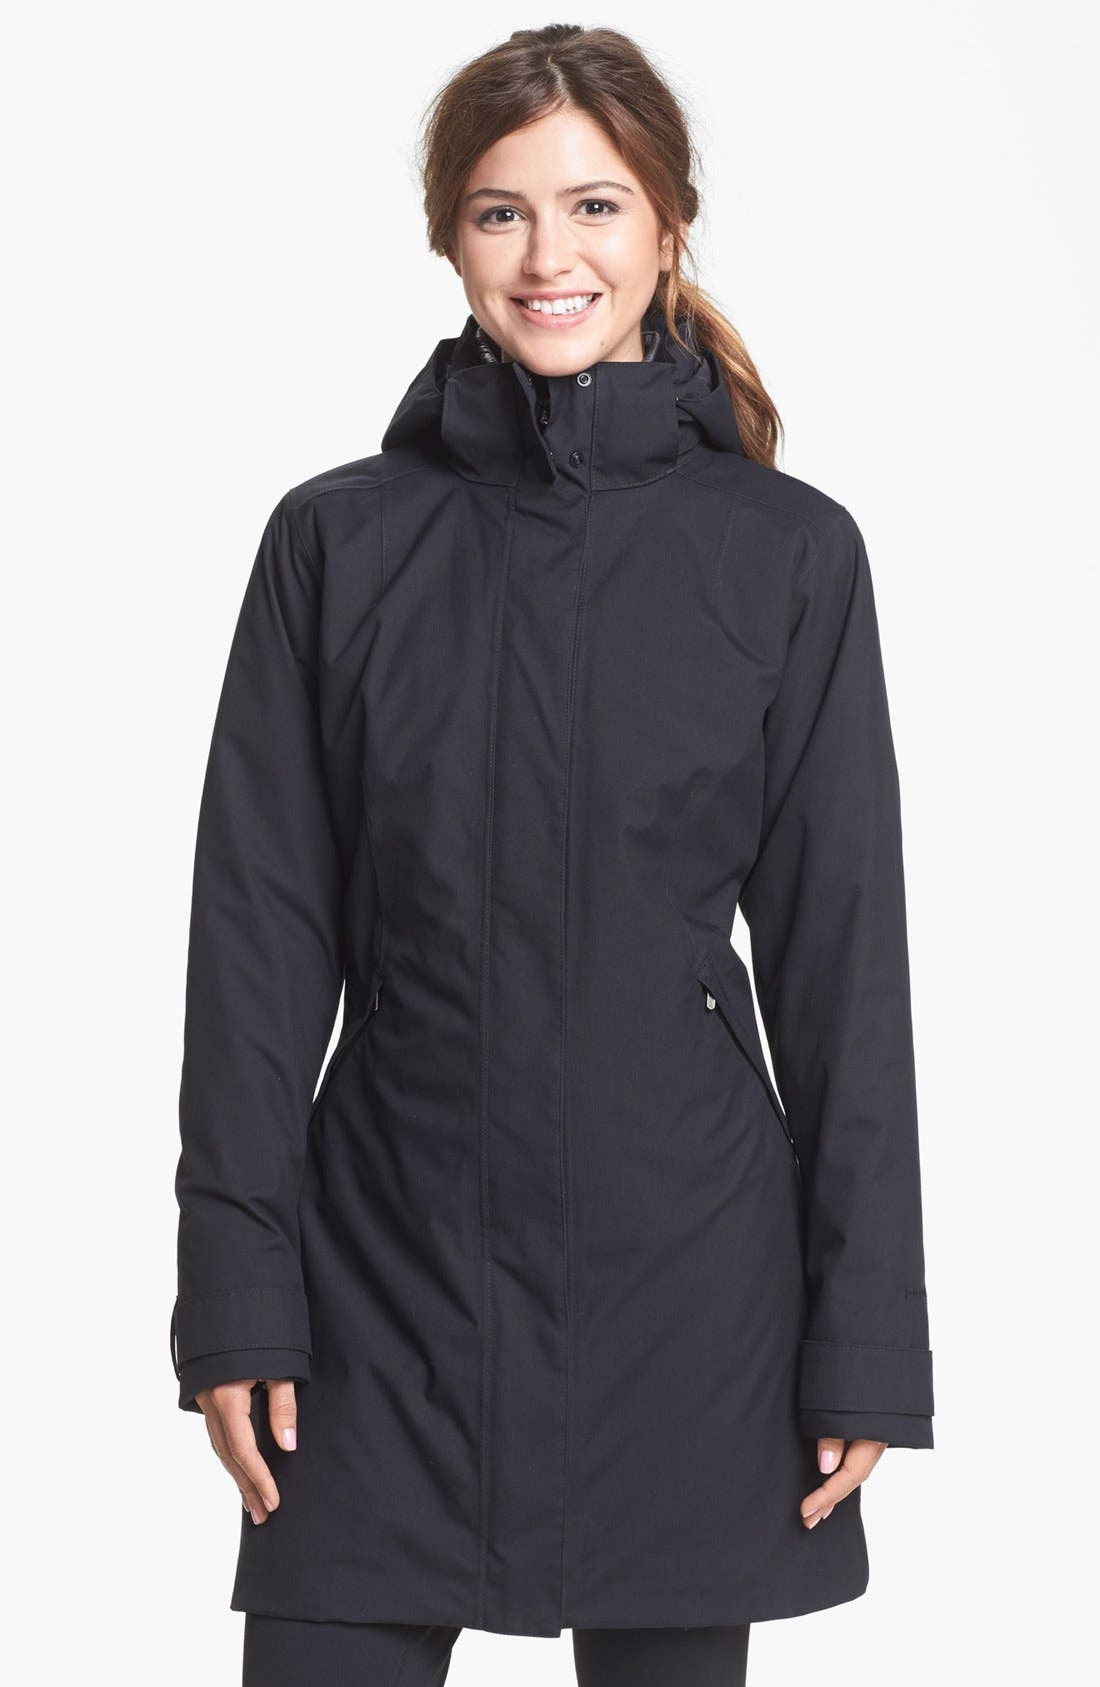 Alternate Image 1 Selected - Patagonia 'Vosque' 3-in-1 Parka